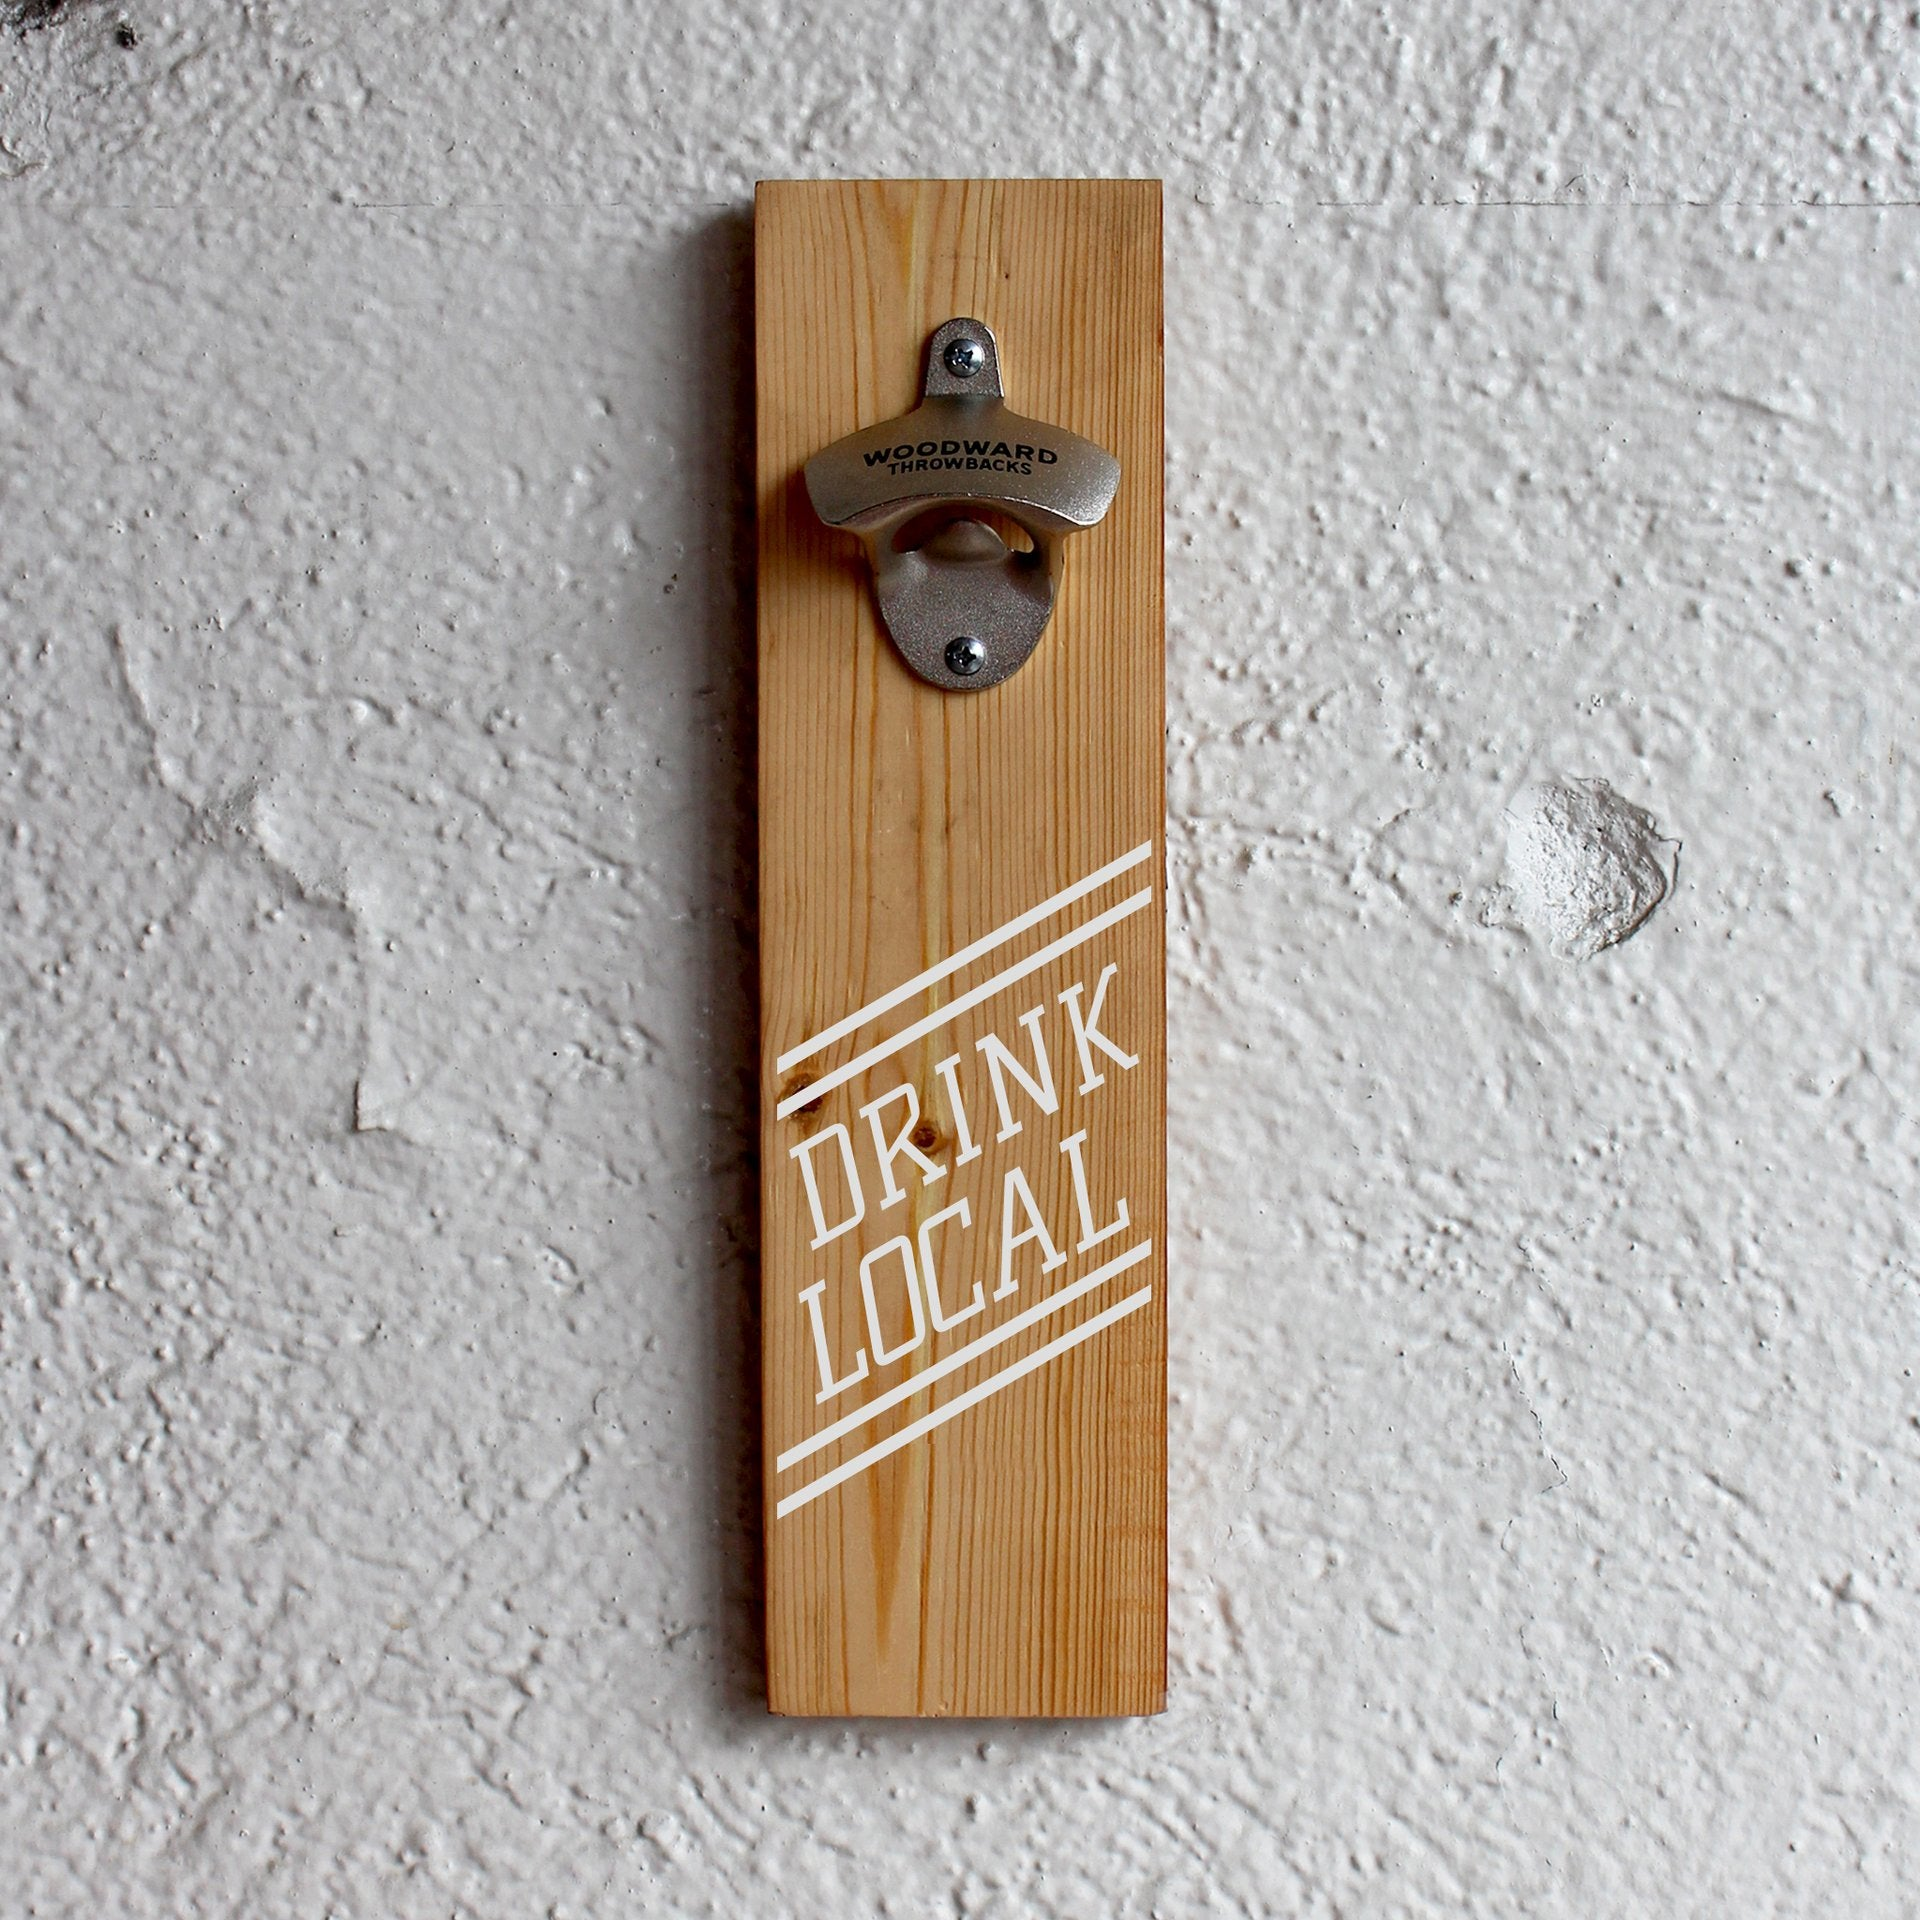 Reclaimed Bottle Opener - Drink Local